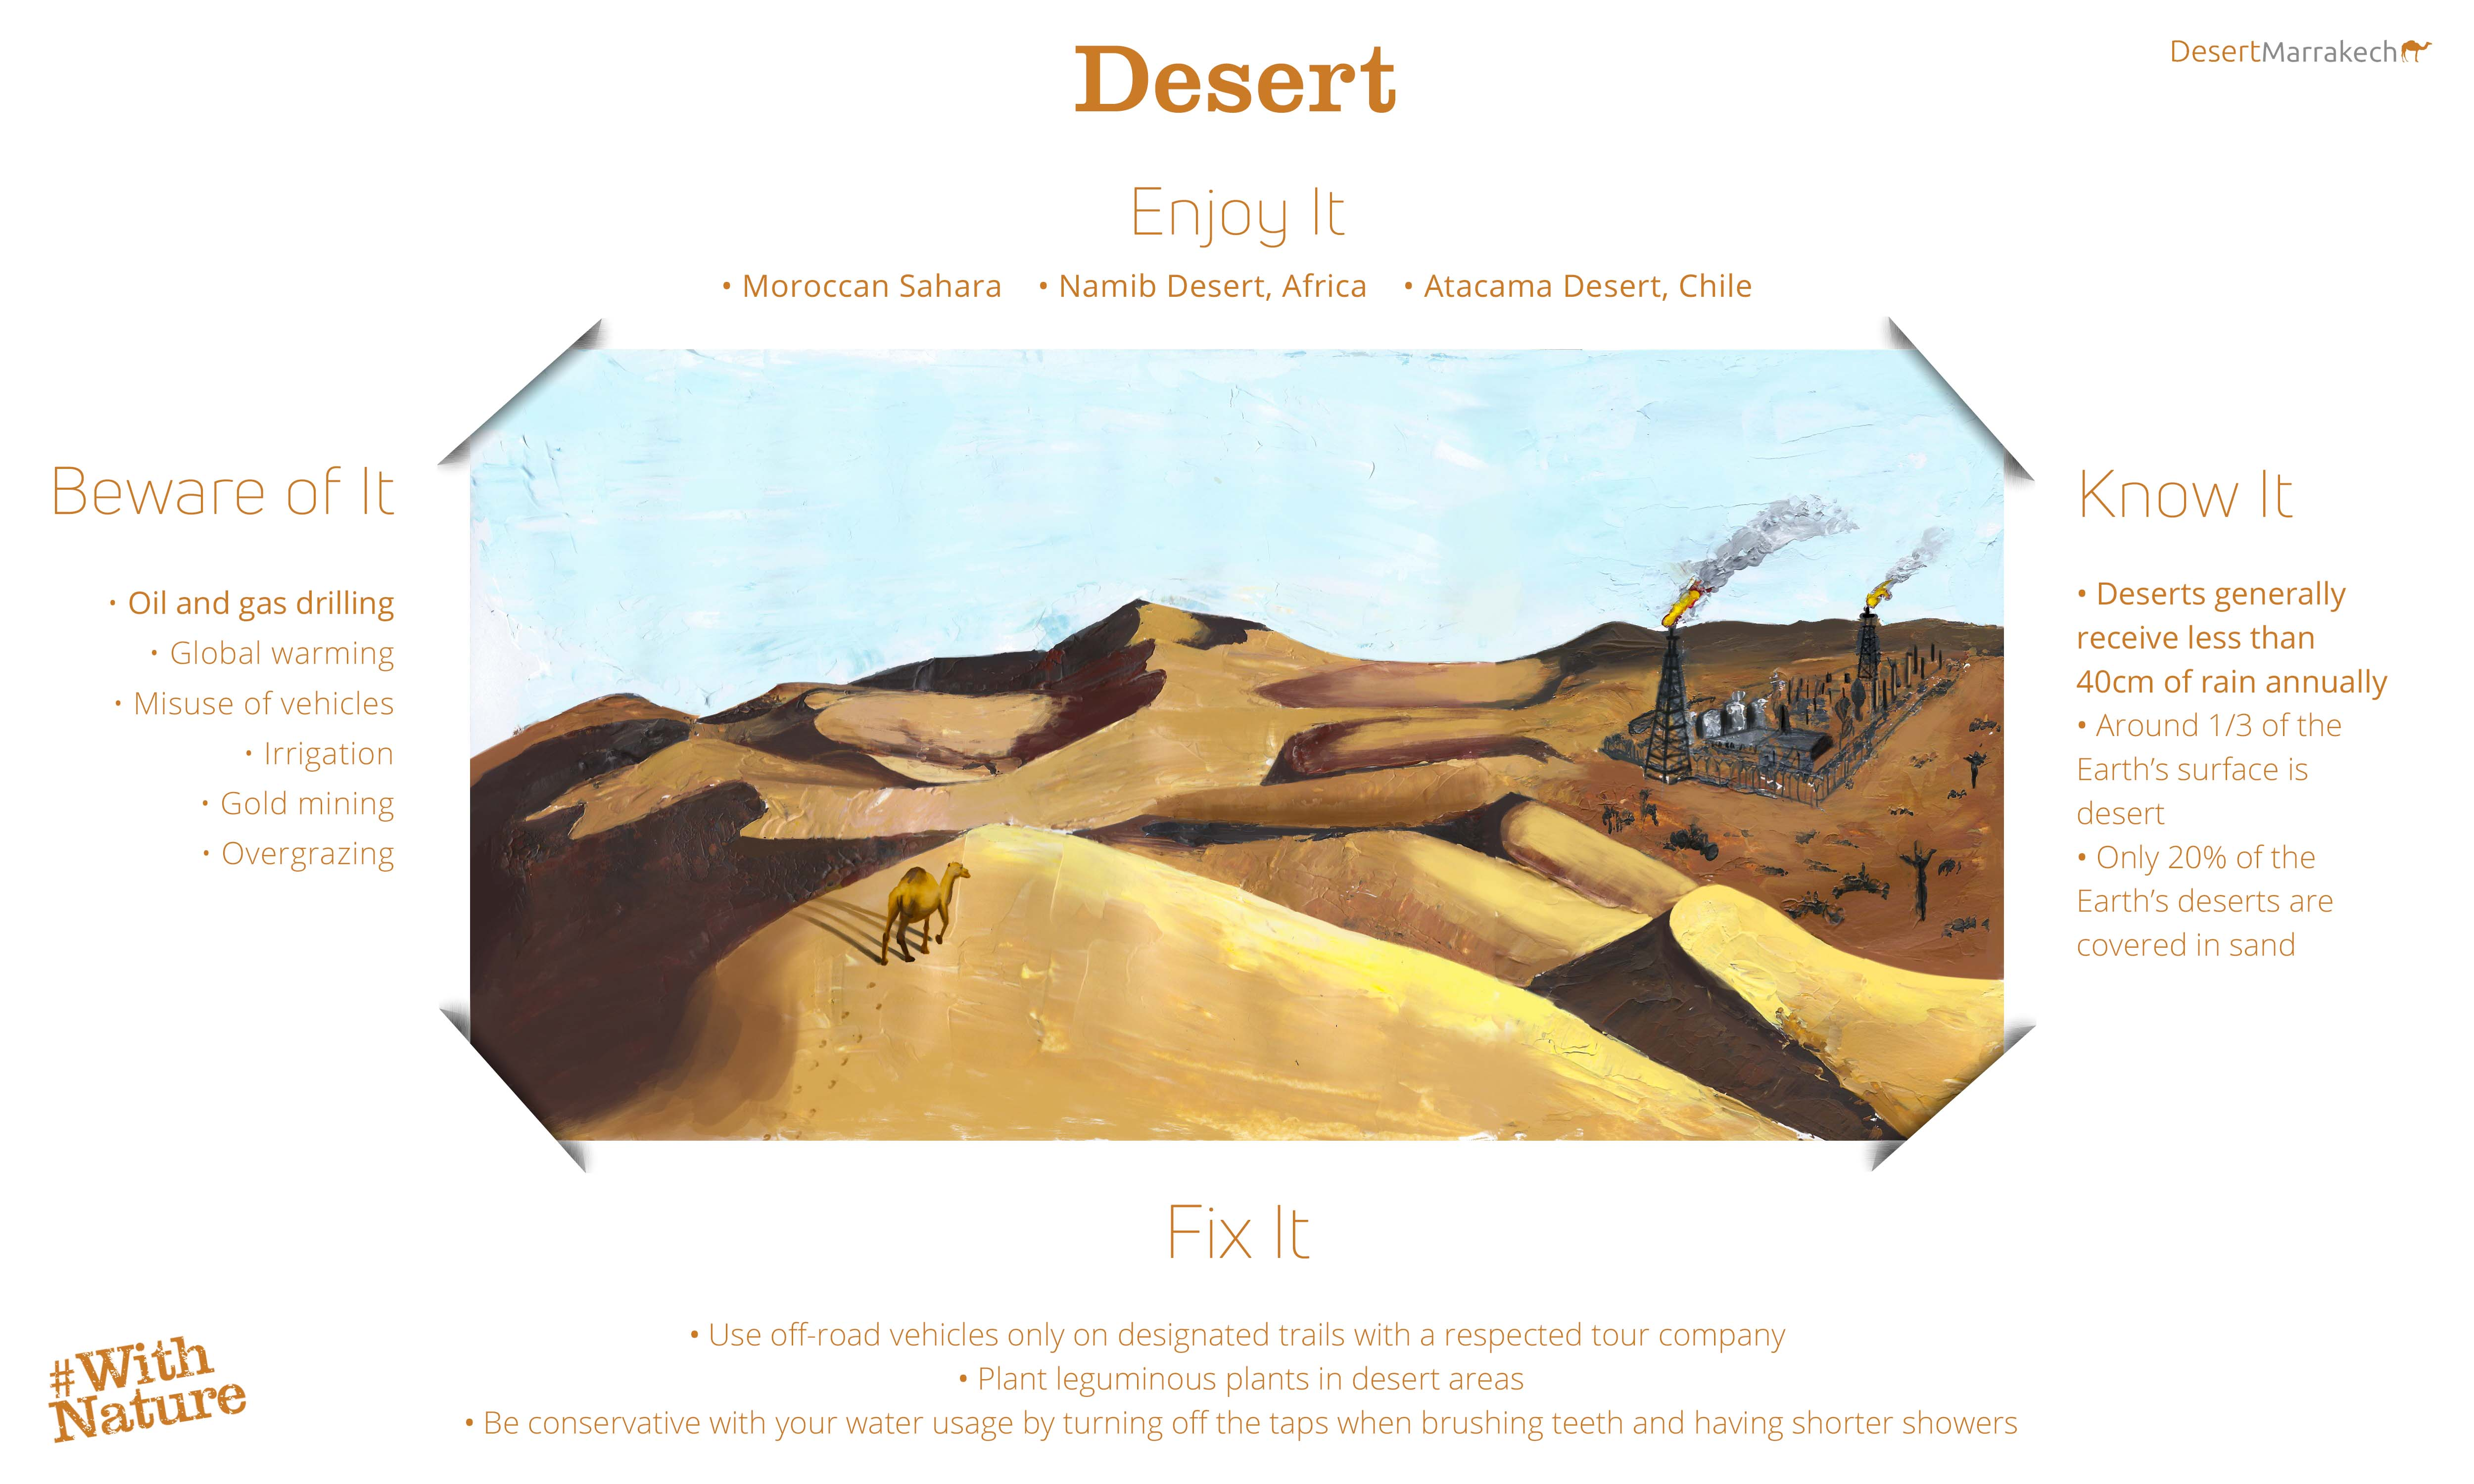 World Environment Day Deserts Infographic